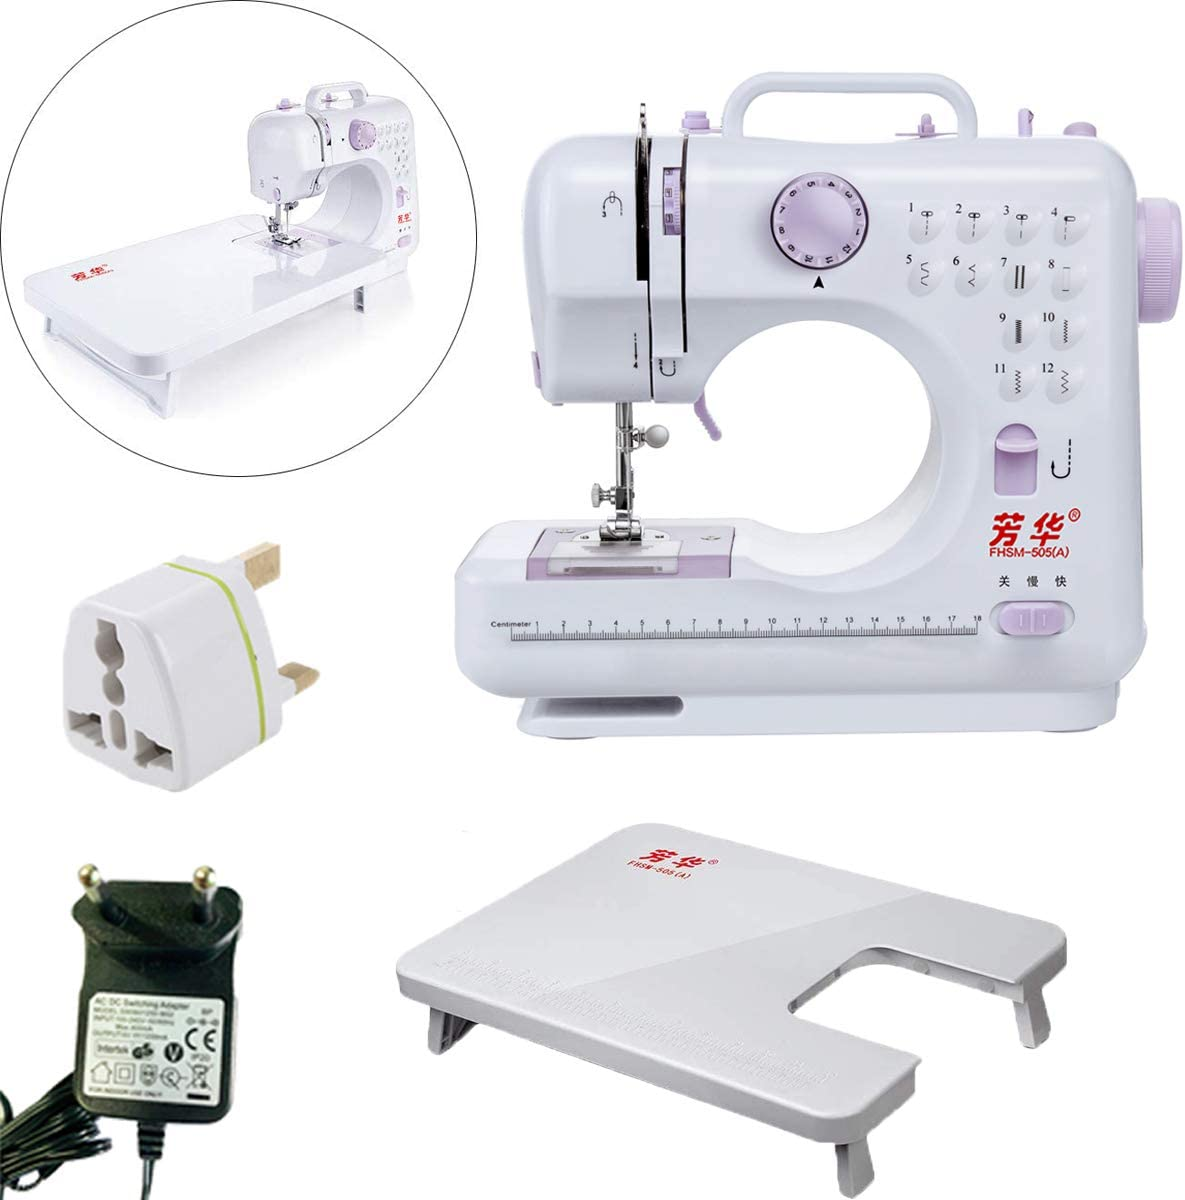 Household Sewing Machine Portable and Multifunctional Electric Overlock Sewing Tool with Extention Table for Beginner Home Sewing Crafting DIY Sewing